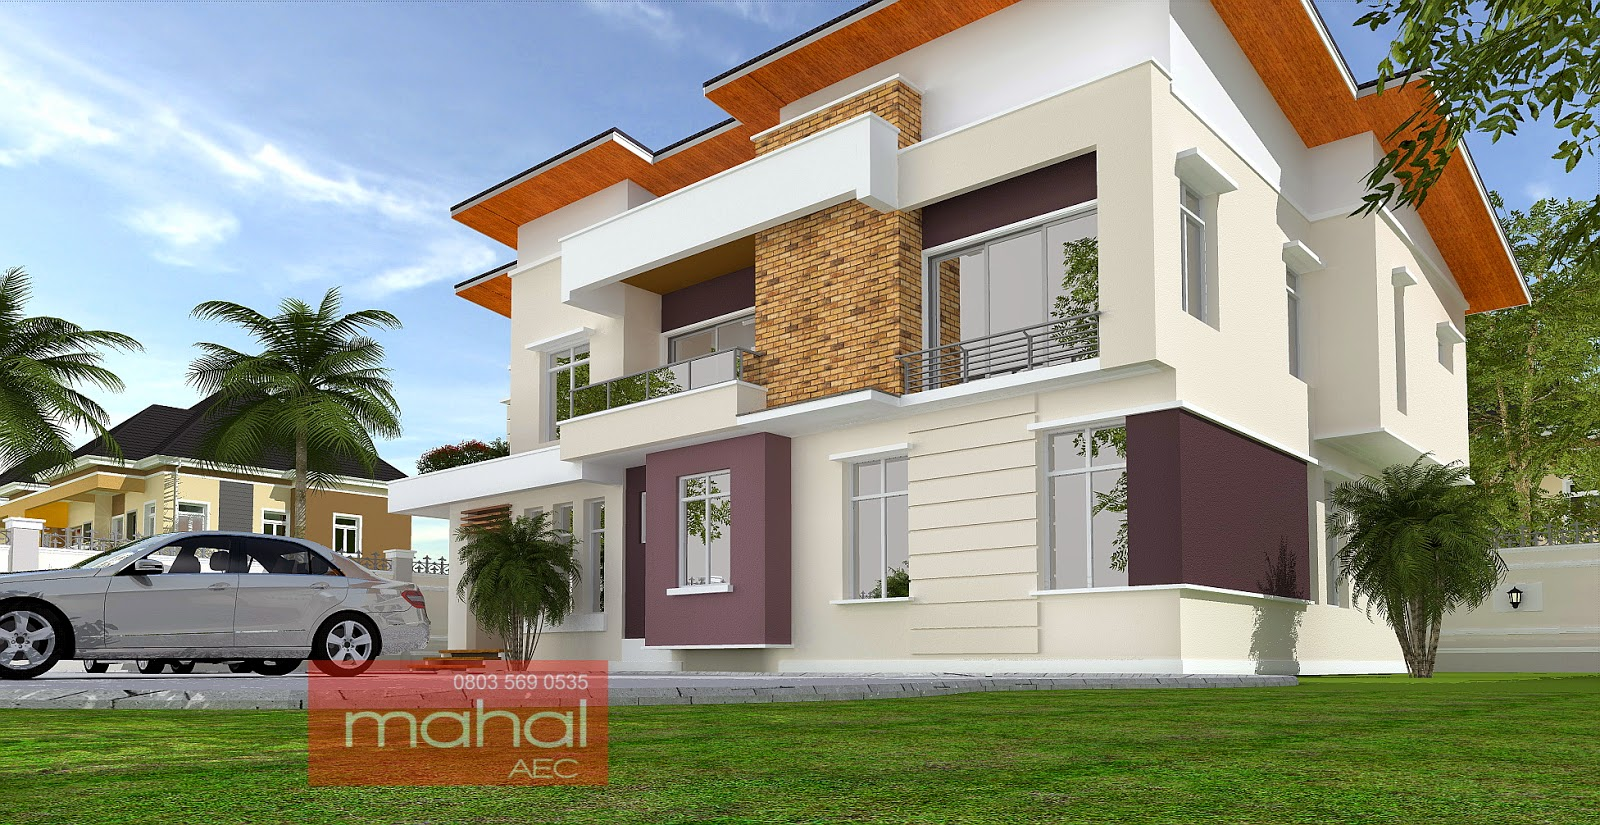 Contemporary Nigerian Residential Architecture Architectural Design Of Houses In Nigeria